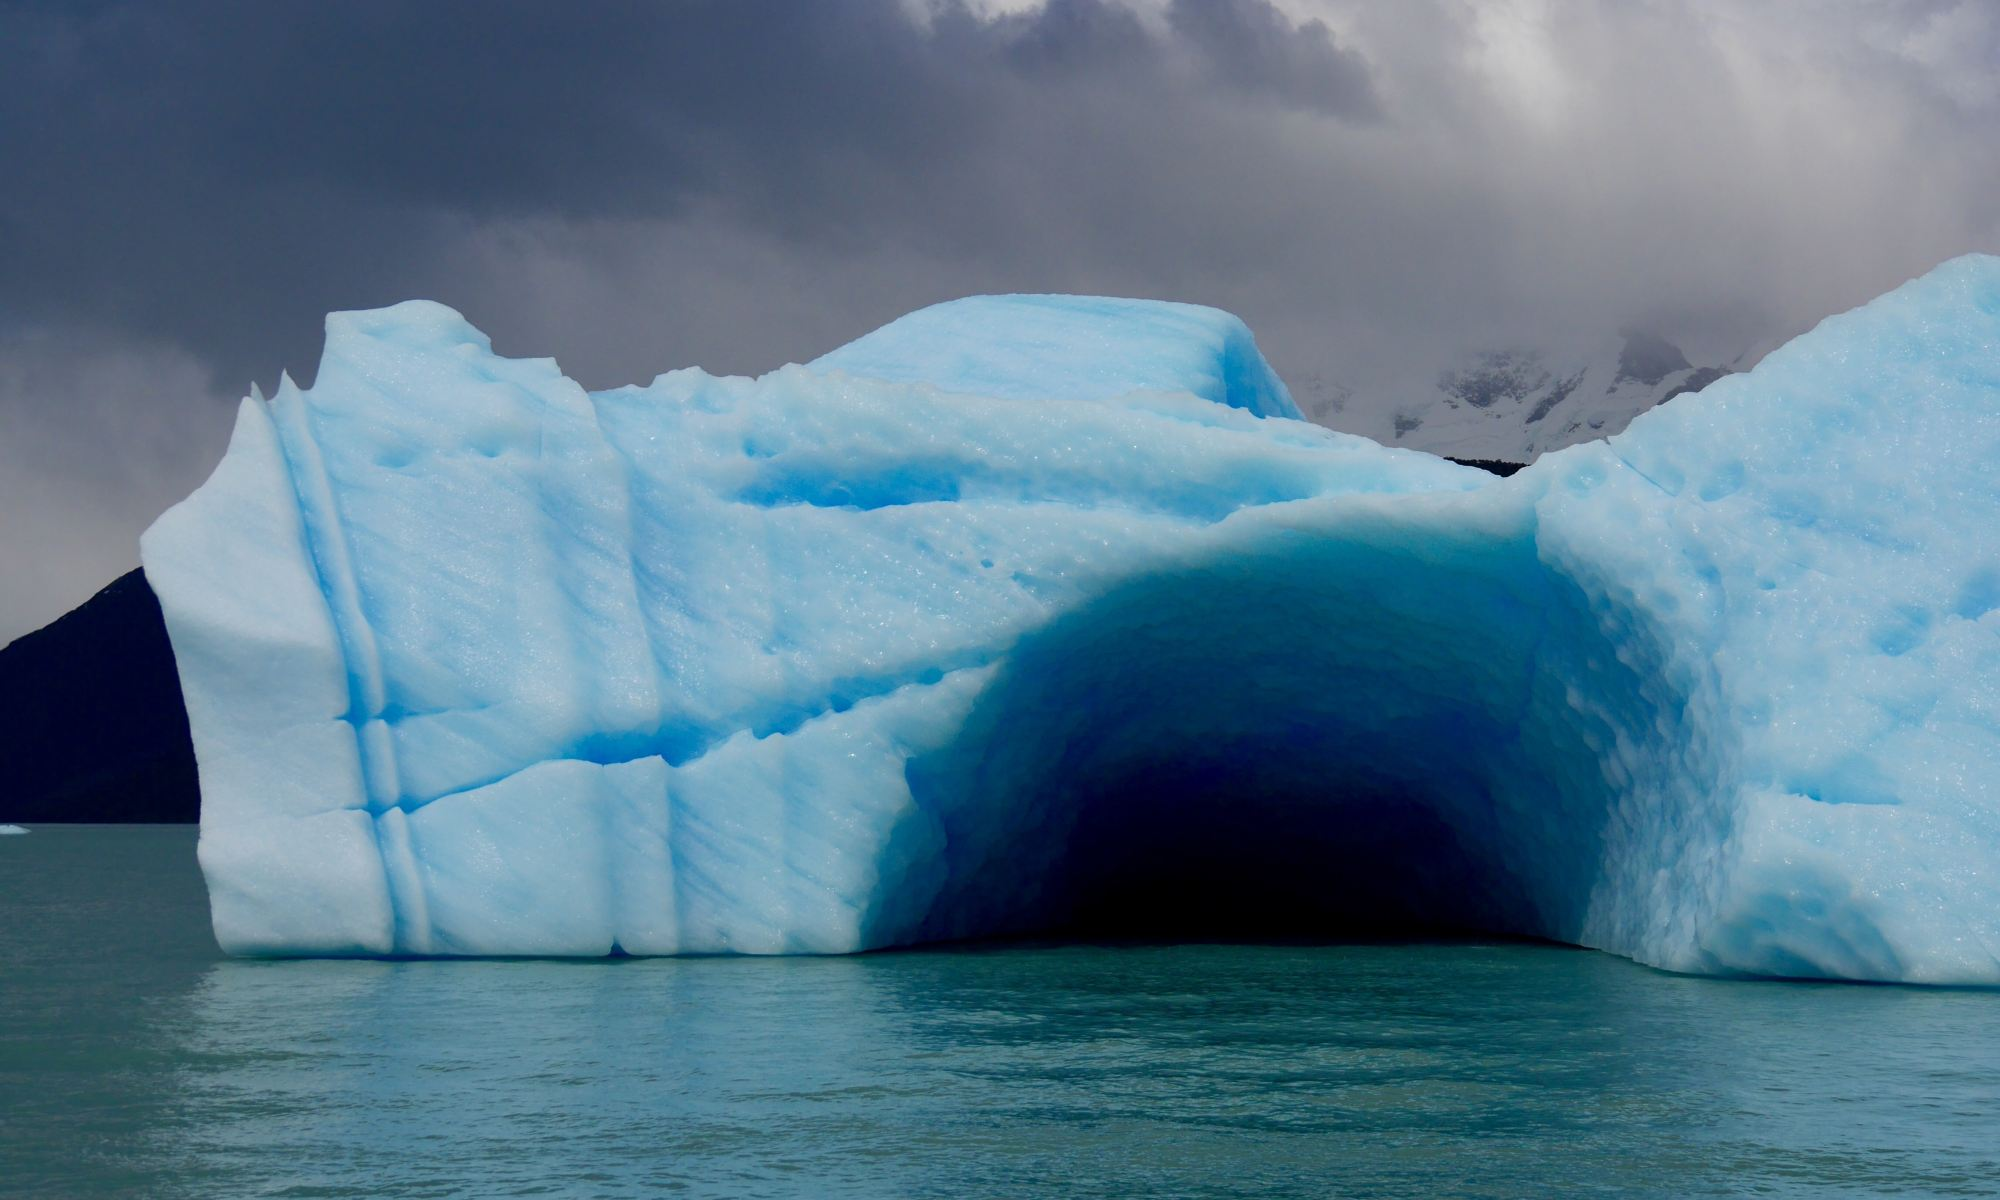 Blue ice cave in the middle of an iceberg floating on body of water